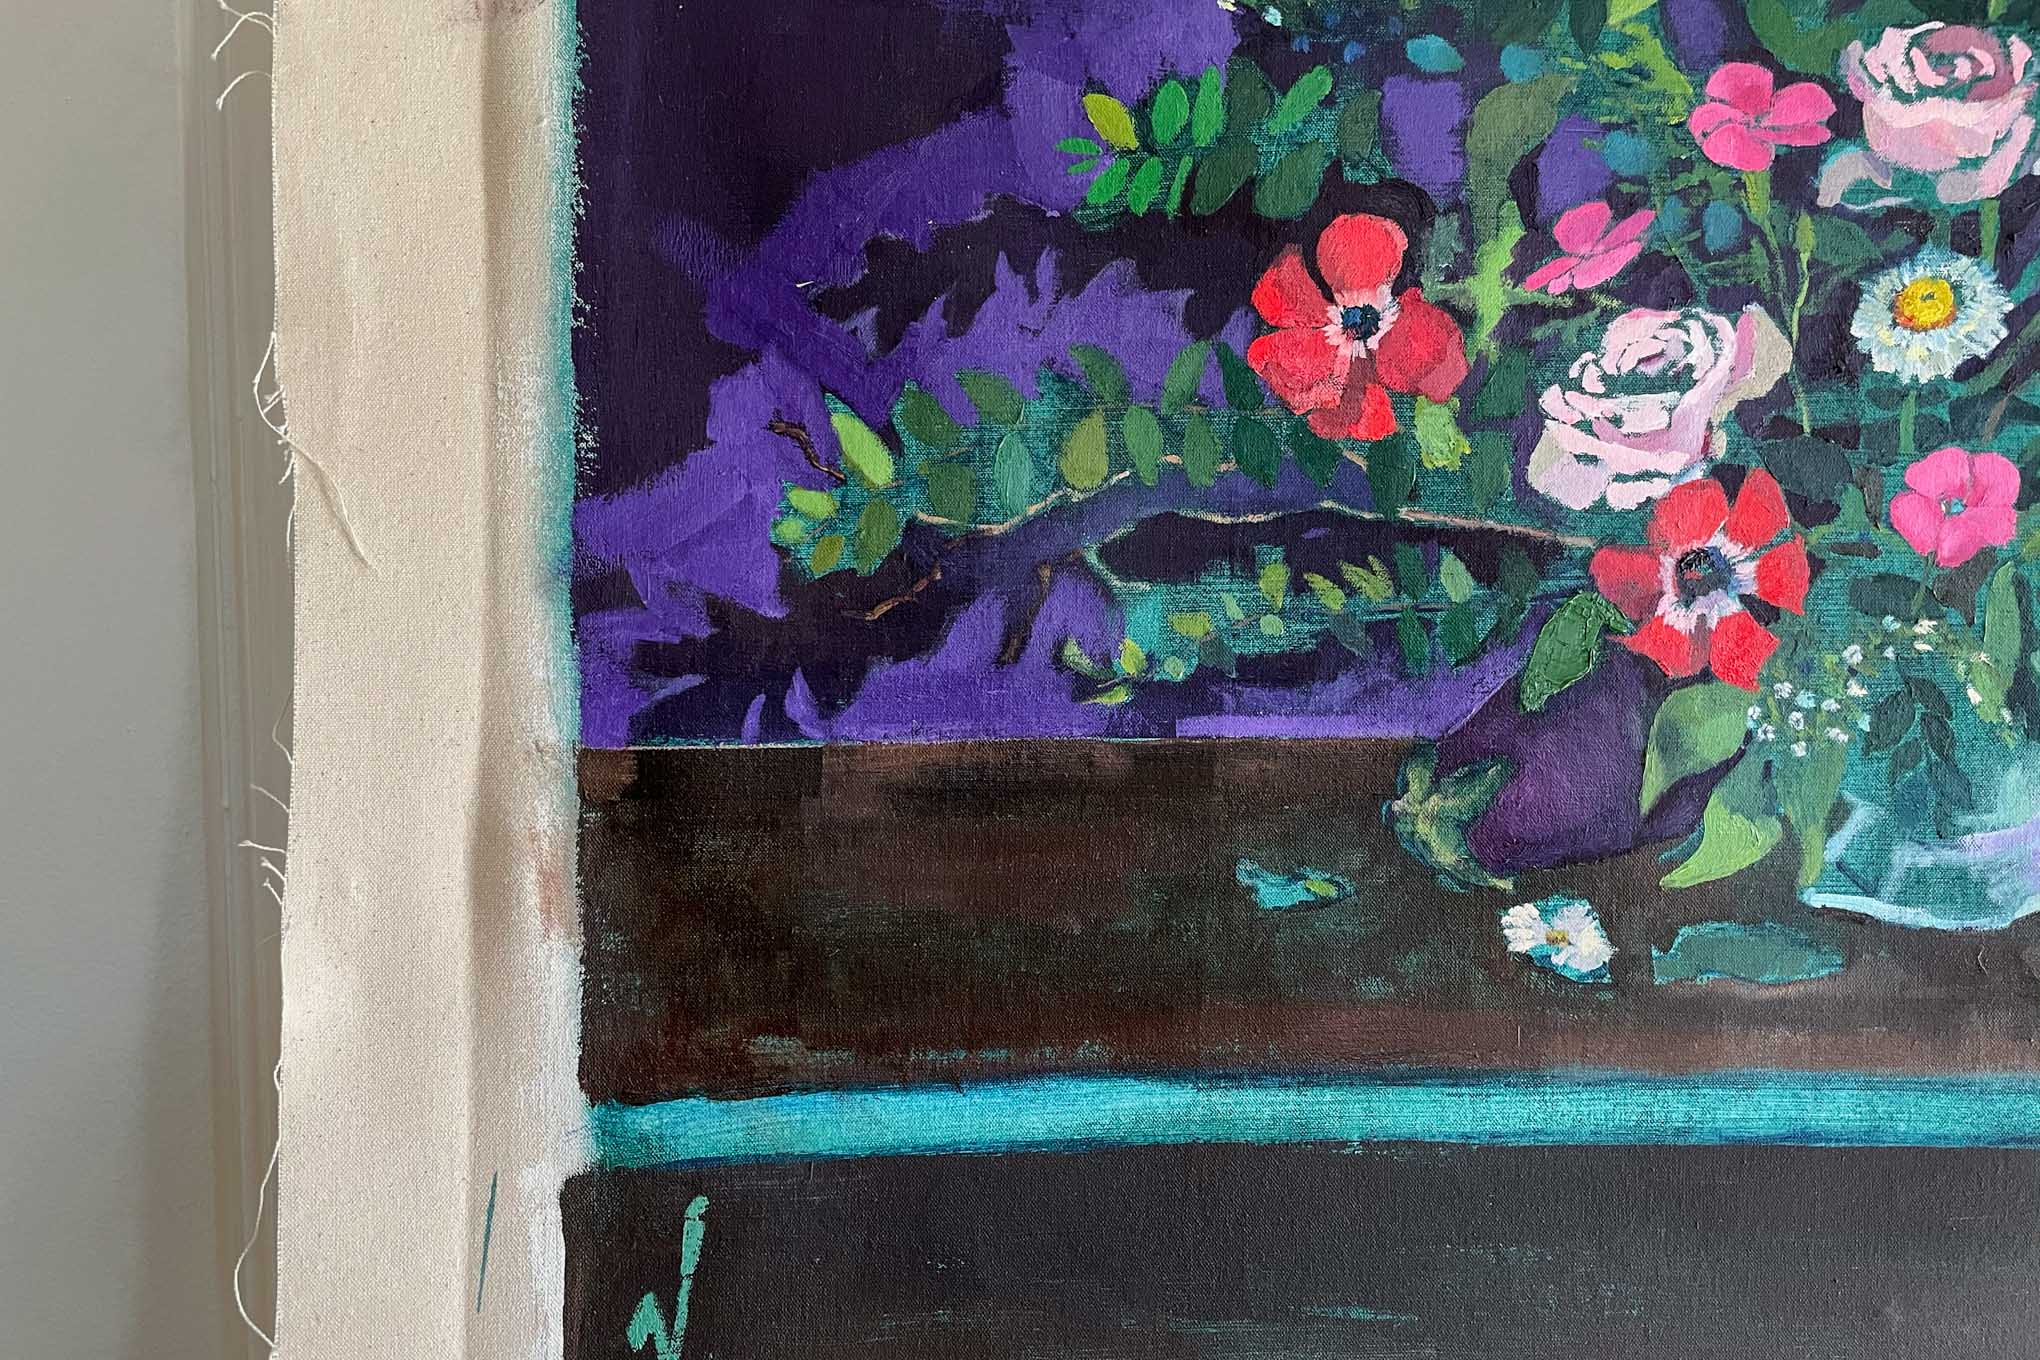 Left hand corner of the ripe painting with flowers